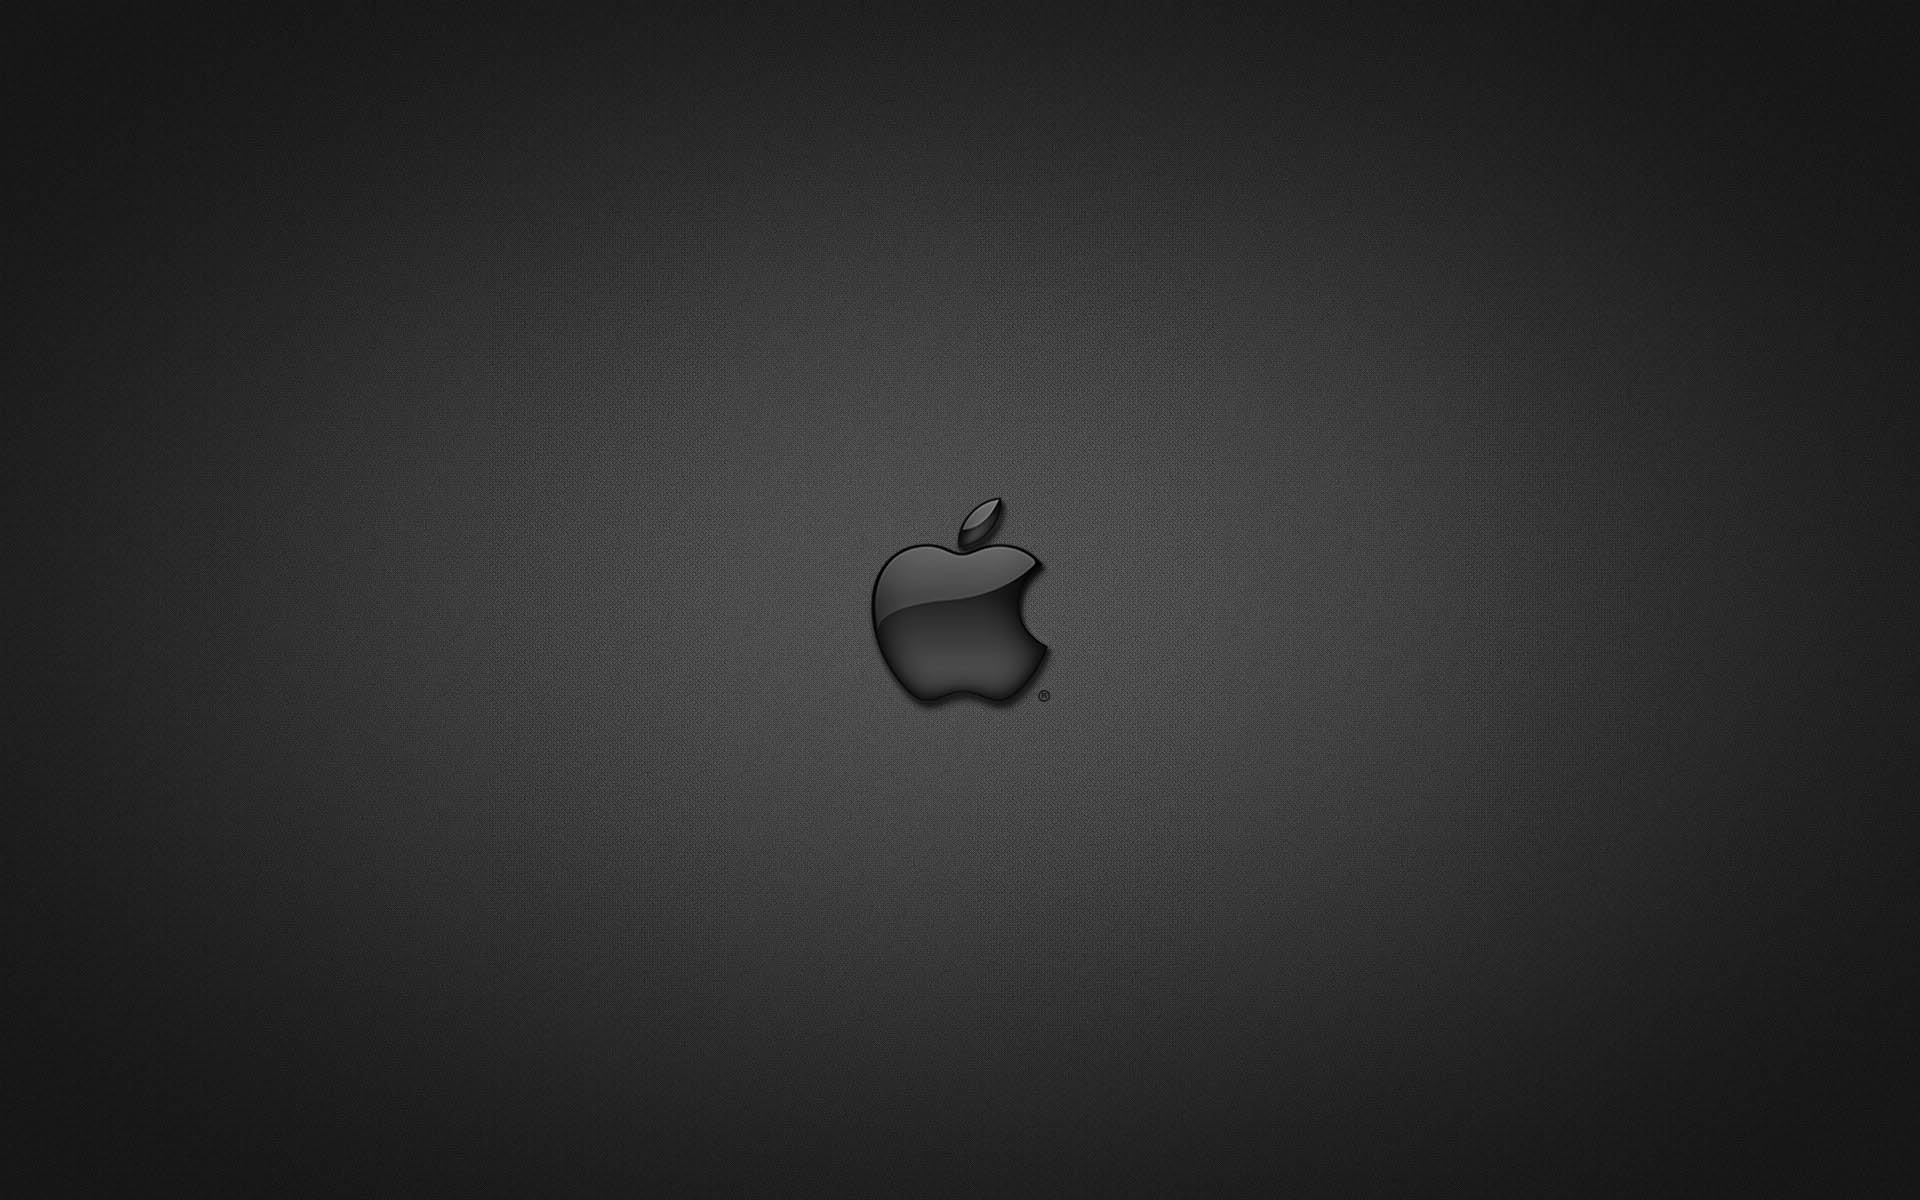 Apple Black and White HD Wallpaper For Mac 3577   Amazing Wallpaperz 1920x1200